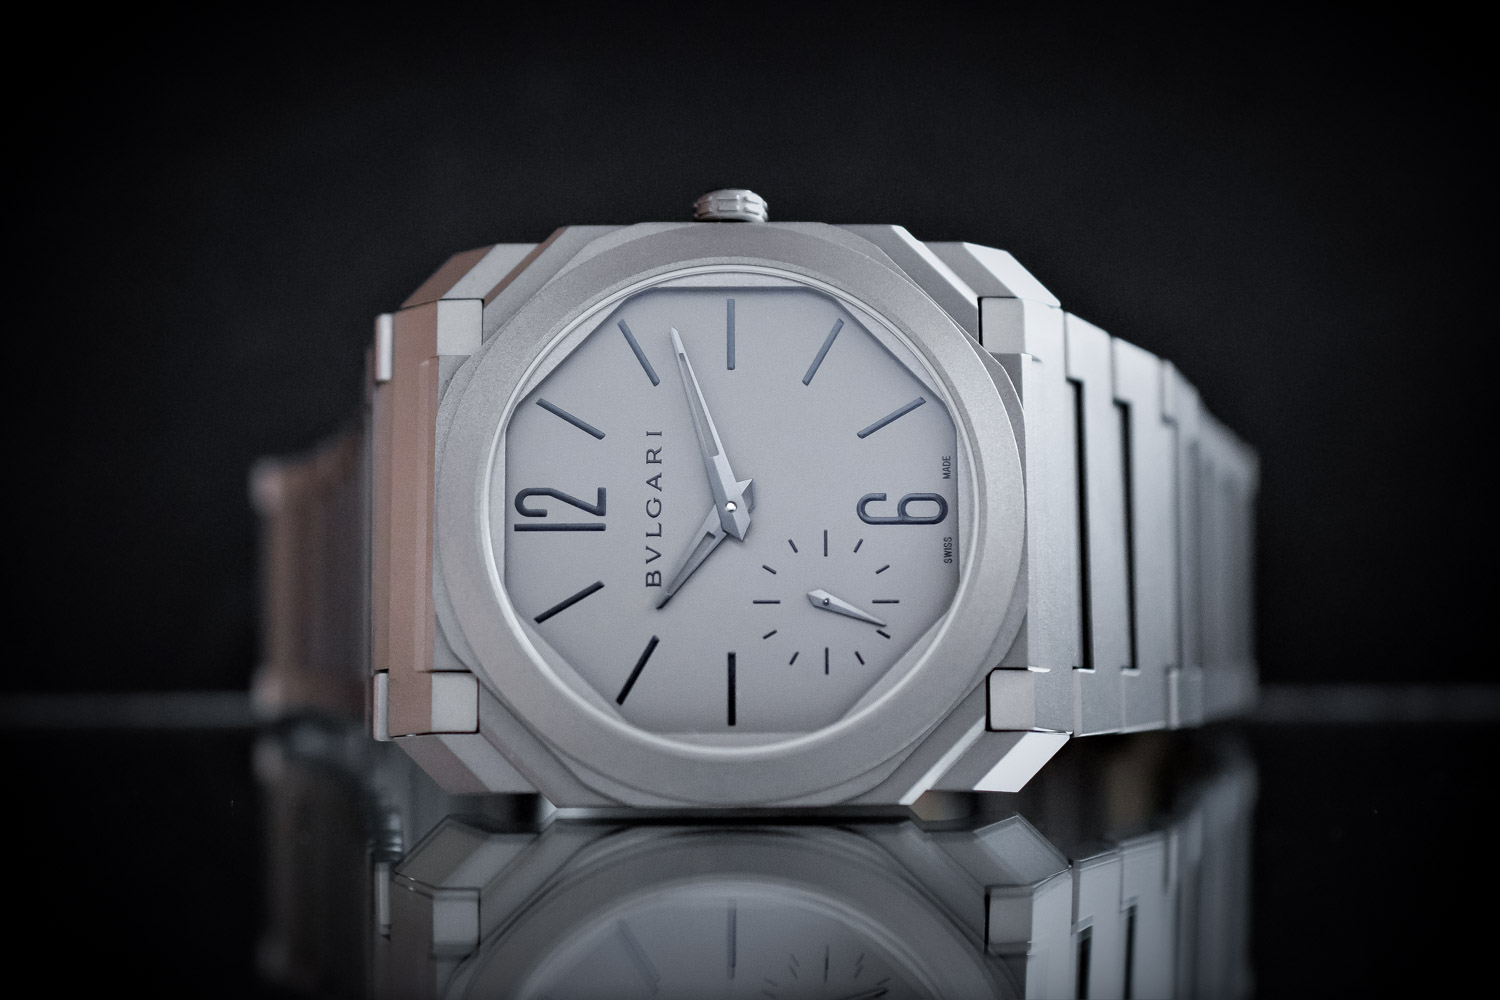 Bulgari Octo Finissimo Automatic - World's Thinnest Automatic Movement